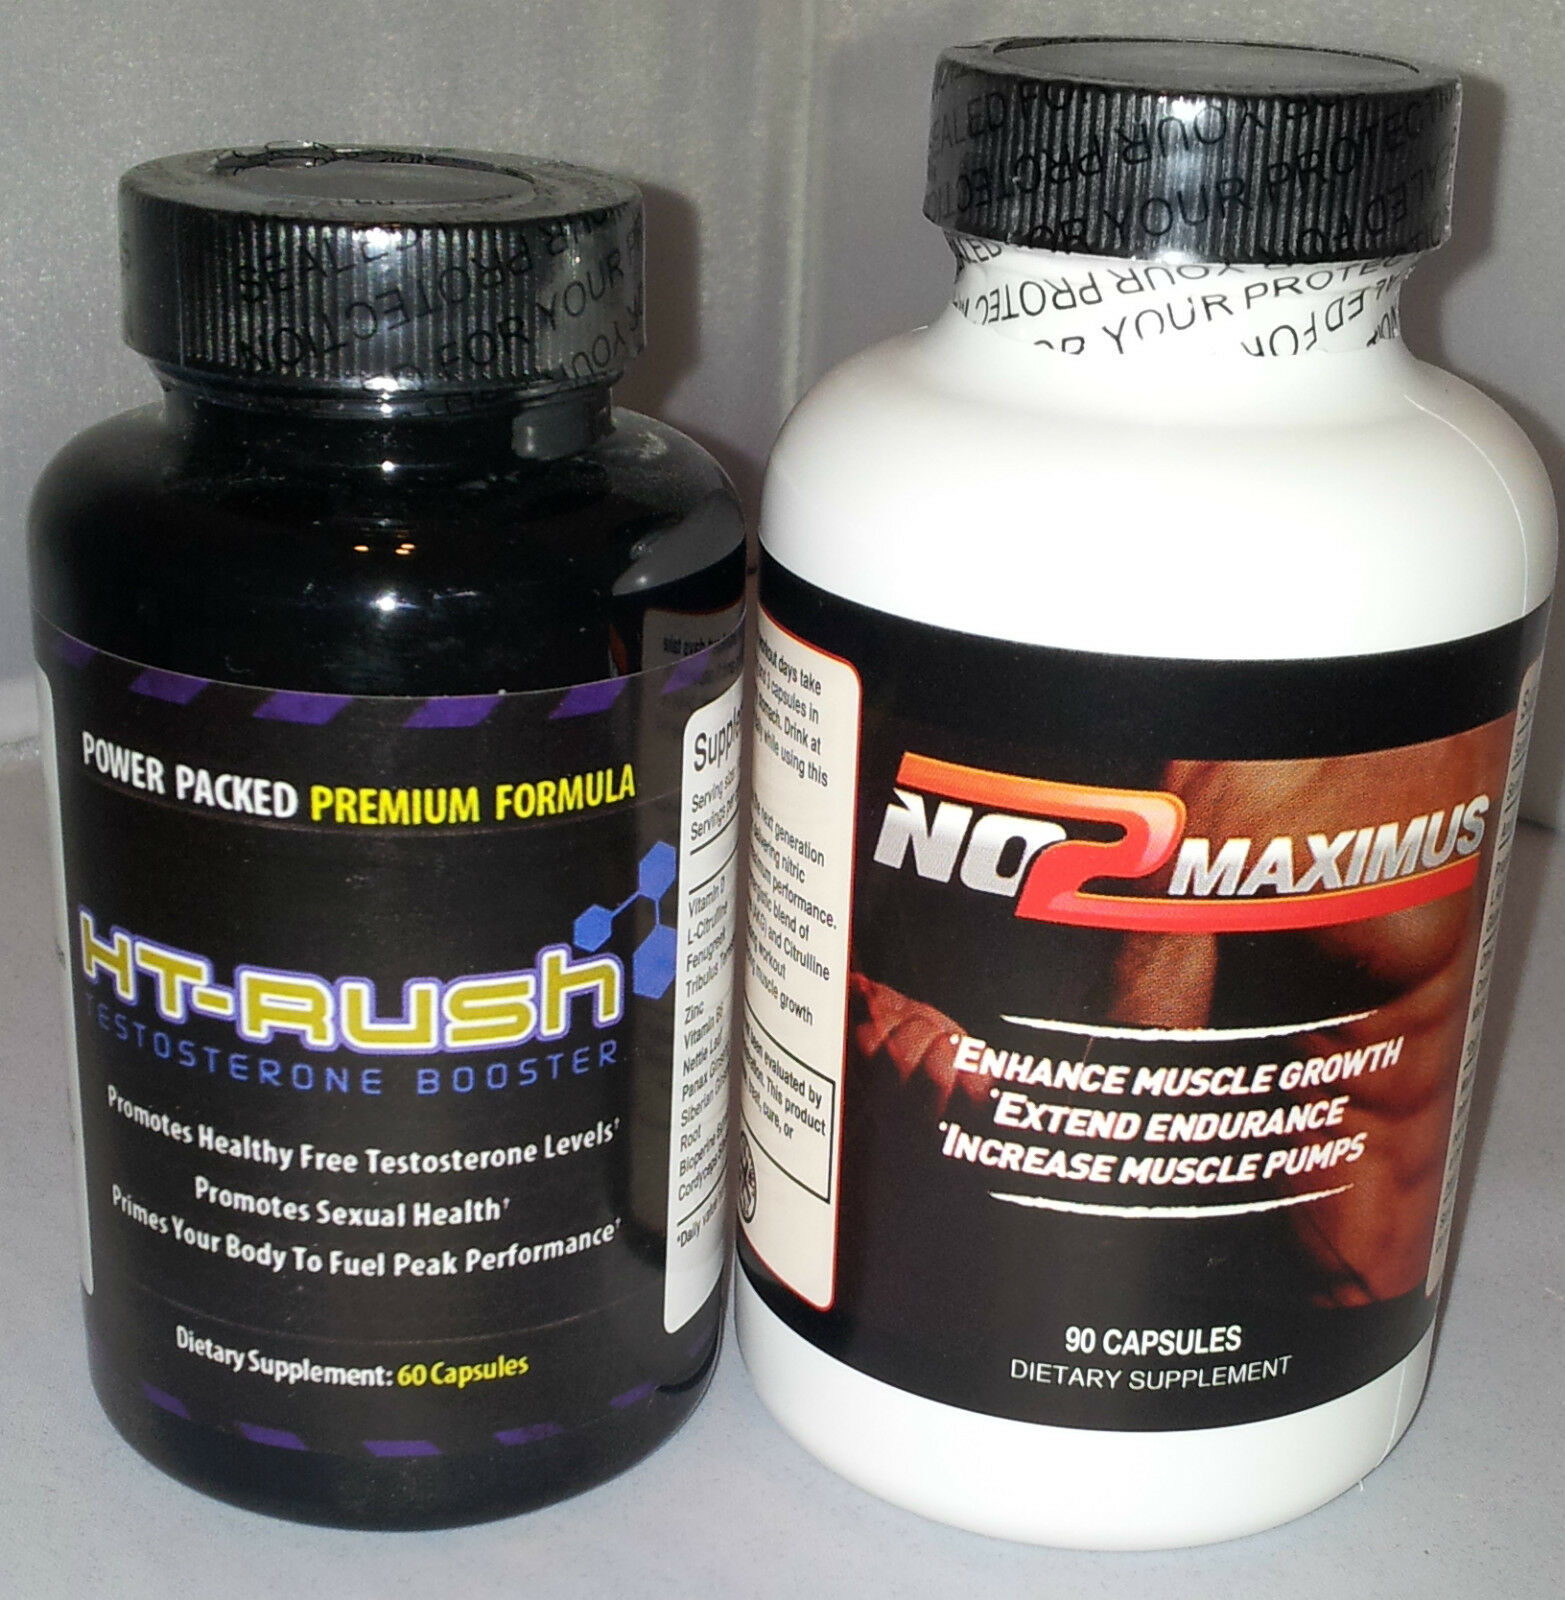 Ht Rush (60 capsules) and and and No2 Maximus(90 capsules) NEW AND SEALED b1ffaa